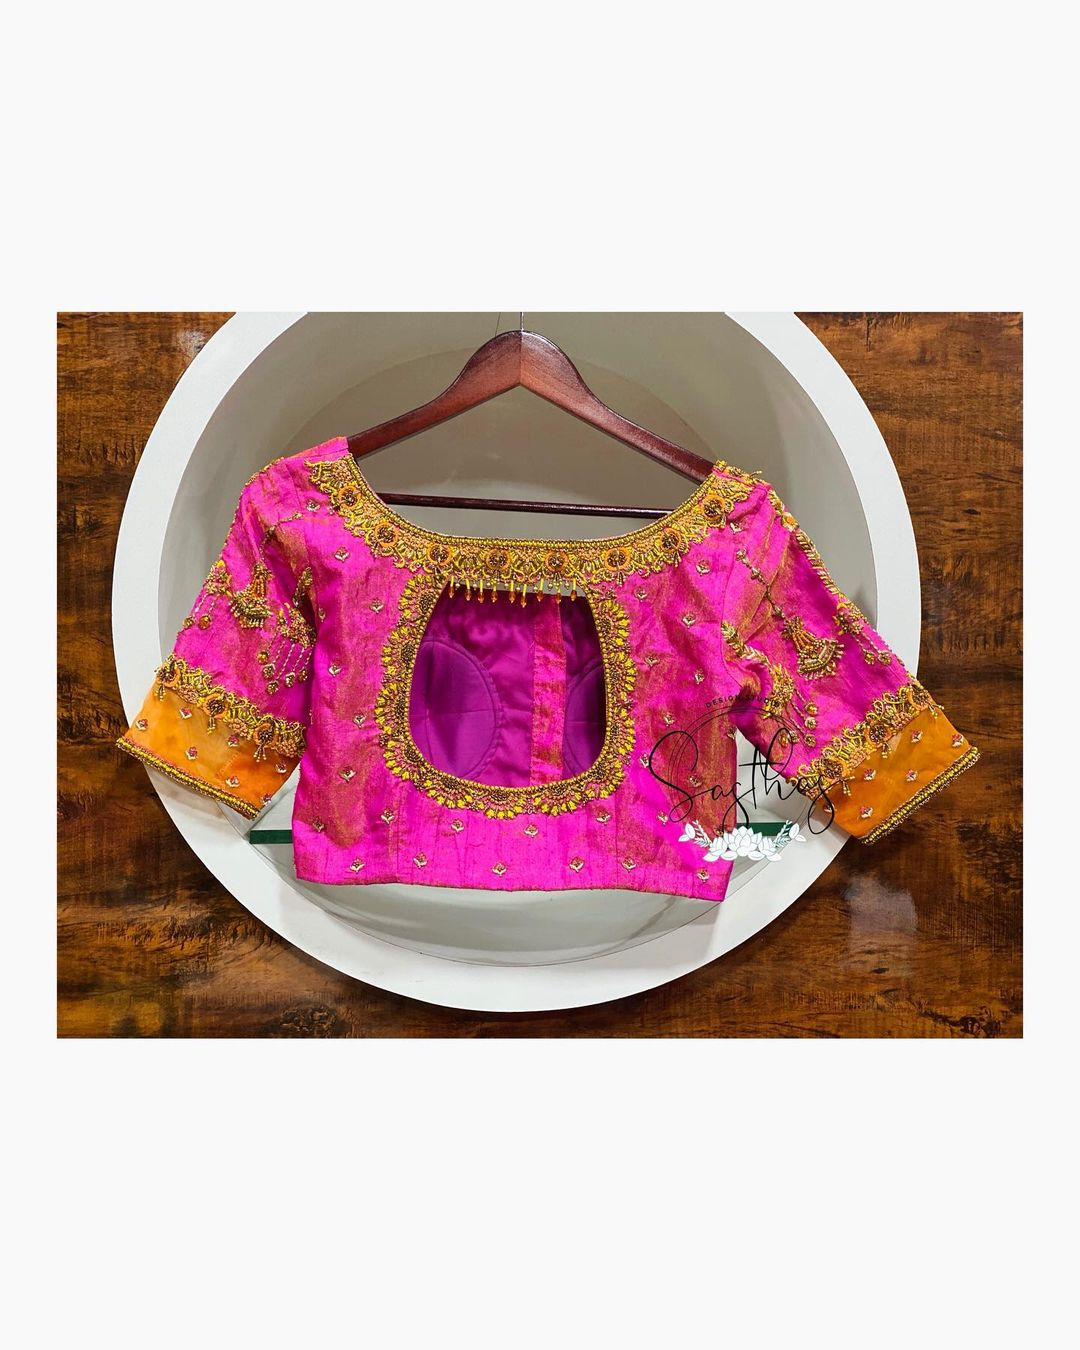 Gorgeous pink color designer blouse with floral and maang tikka design hand embroidery gold thread aari work.  2021-04-08